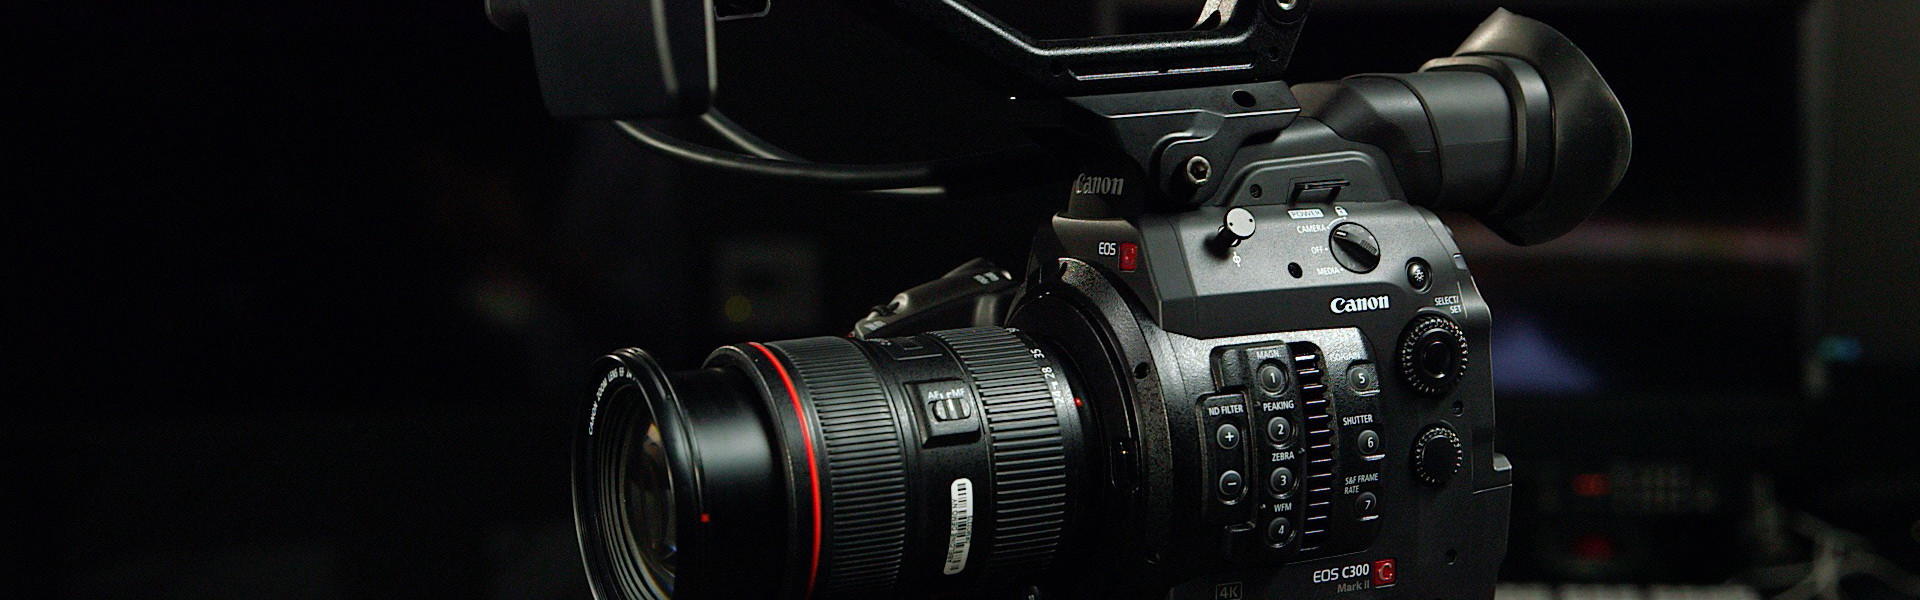 Header image for article An In-Depth Tour of the Canon C300 Mark II